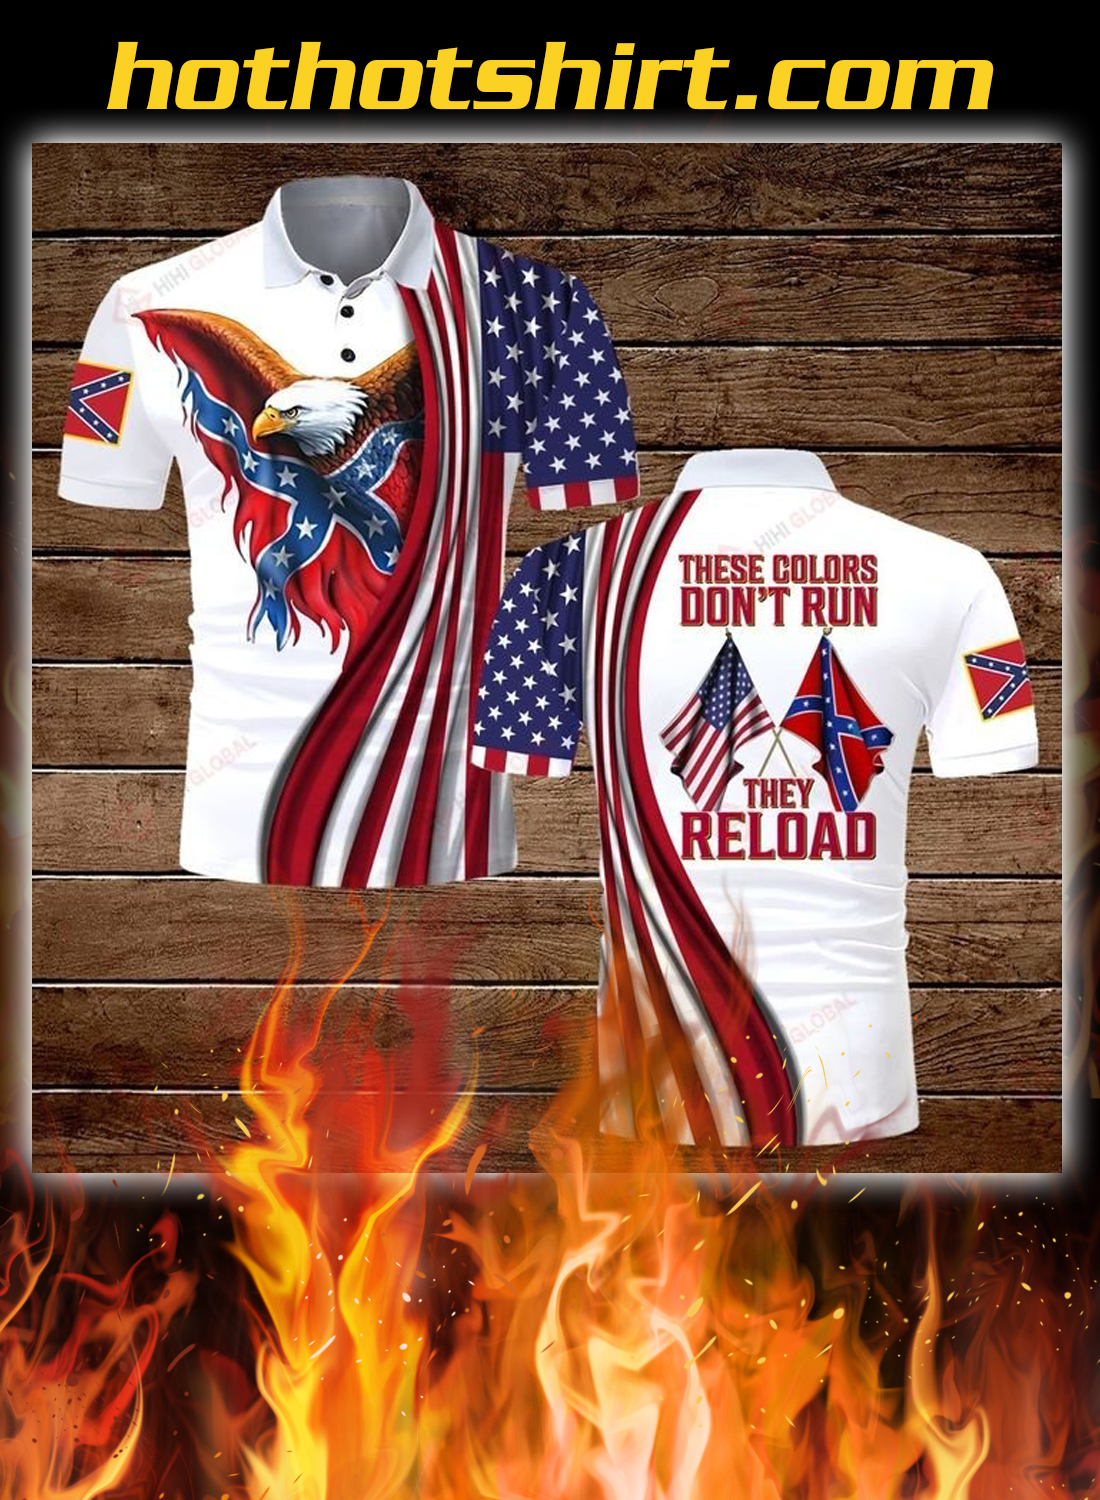 Confederate states of america flag these colors don't run they reload polo shirt